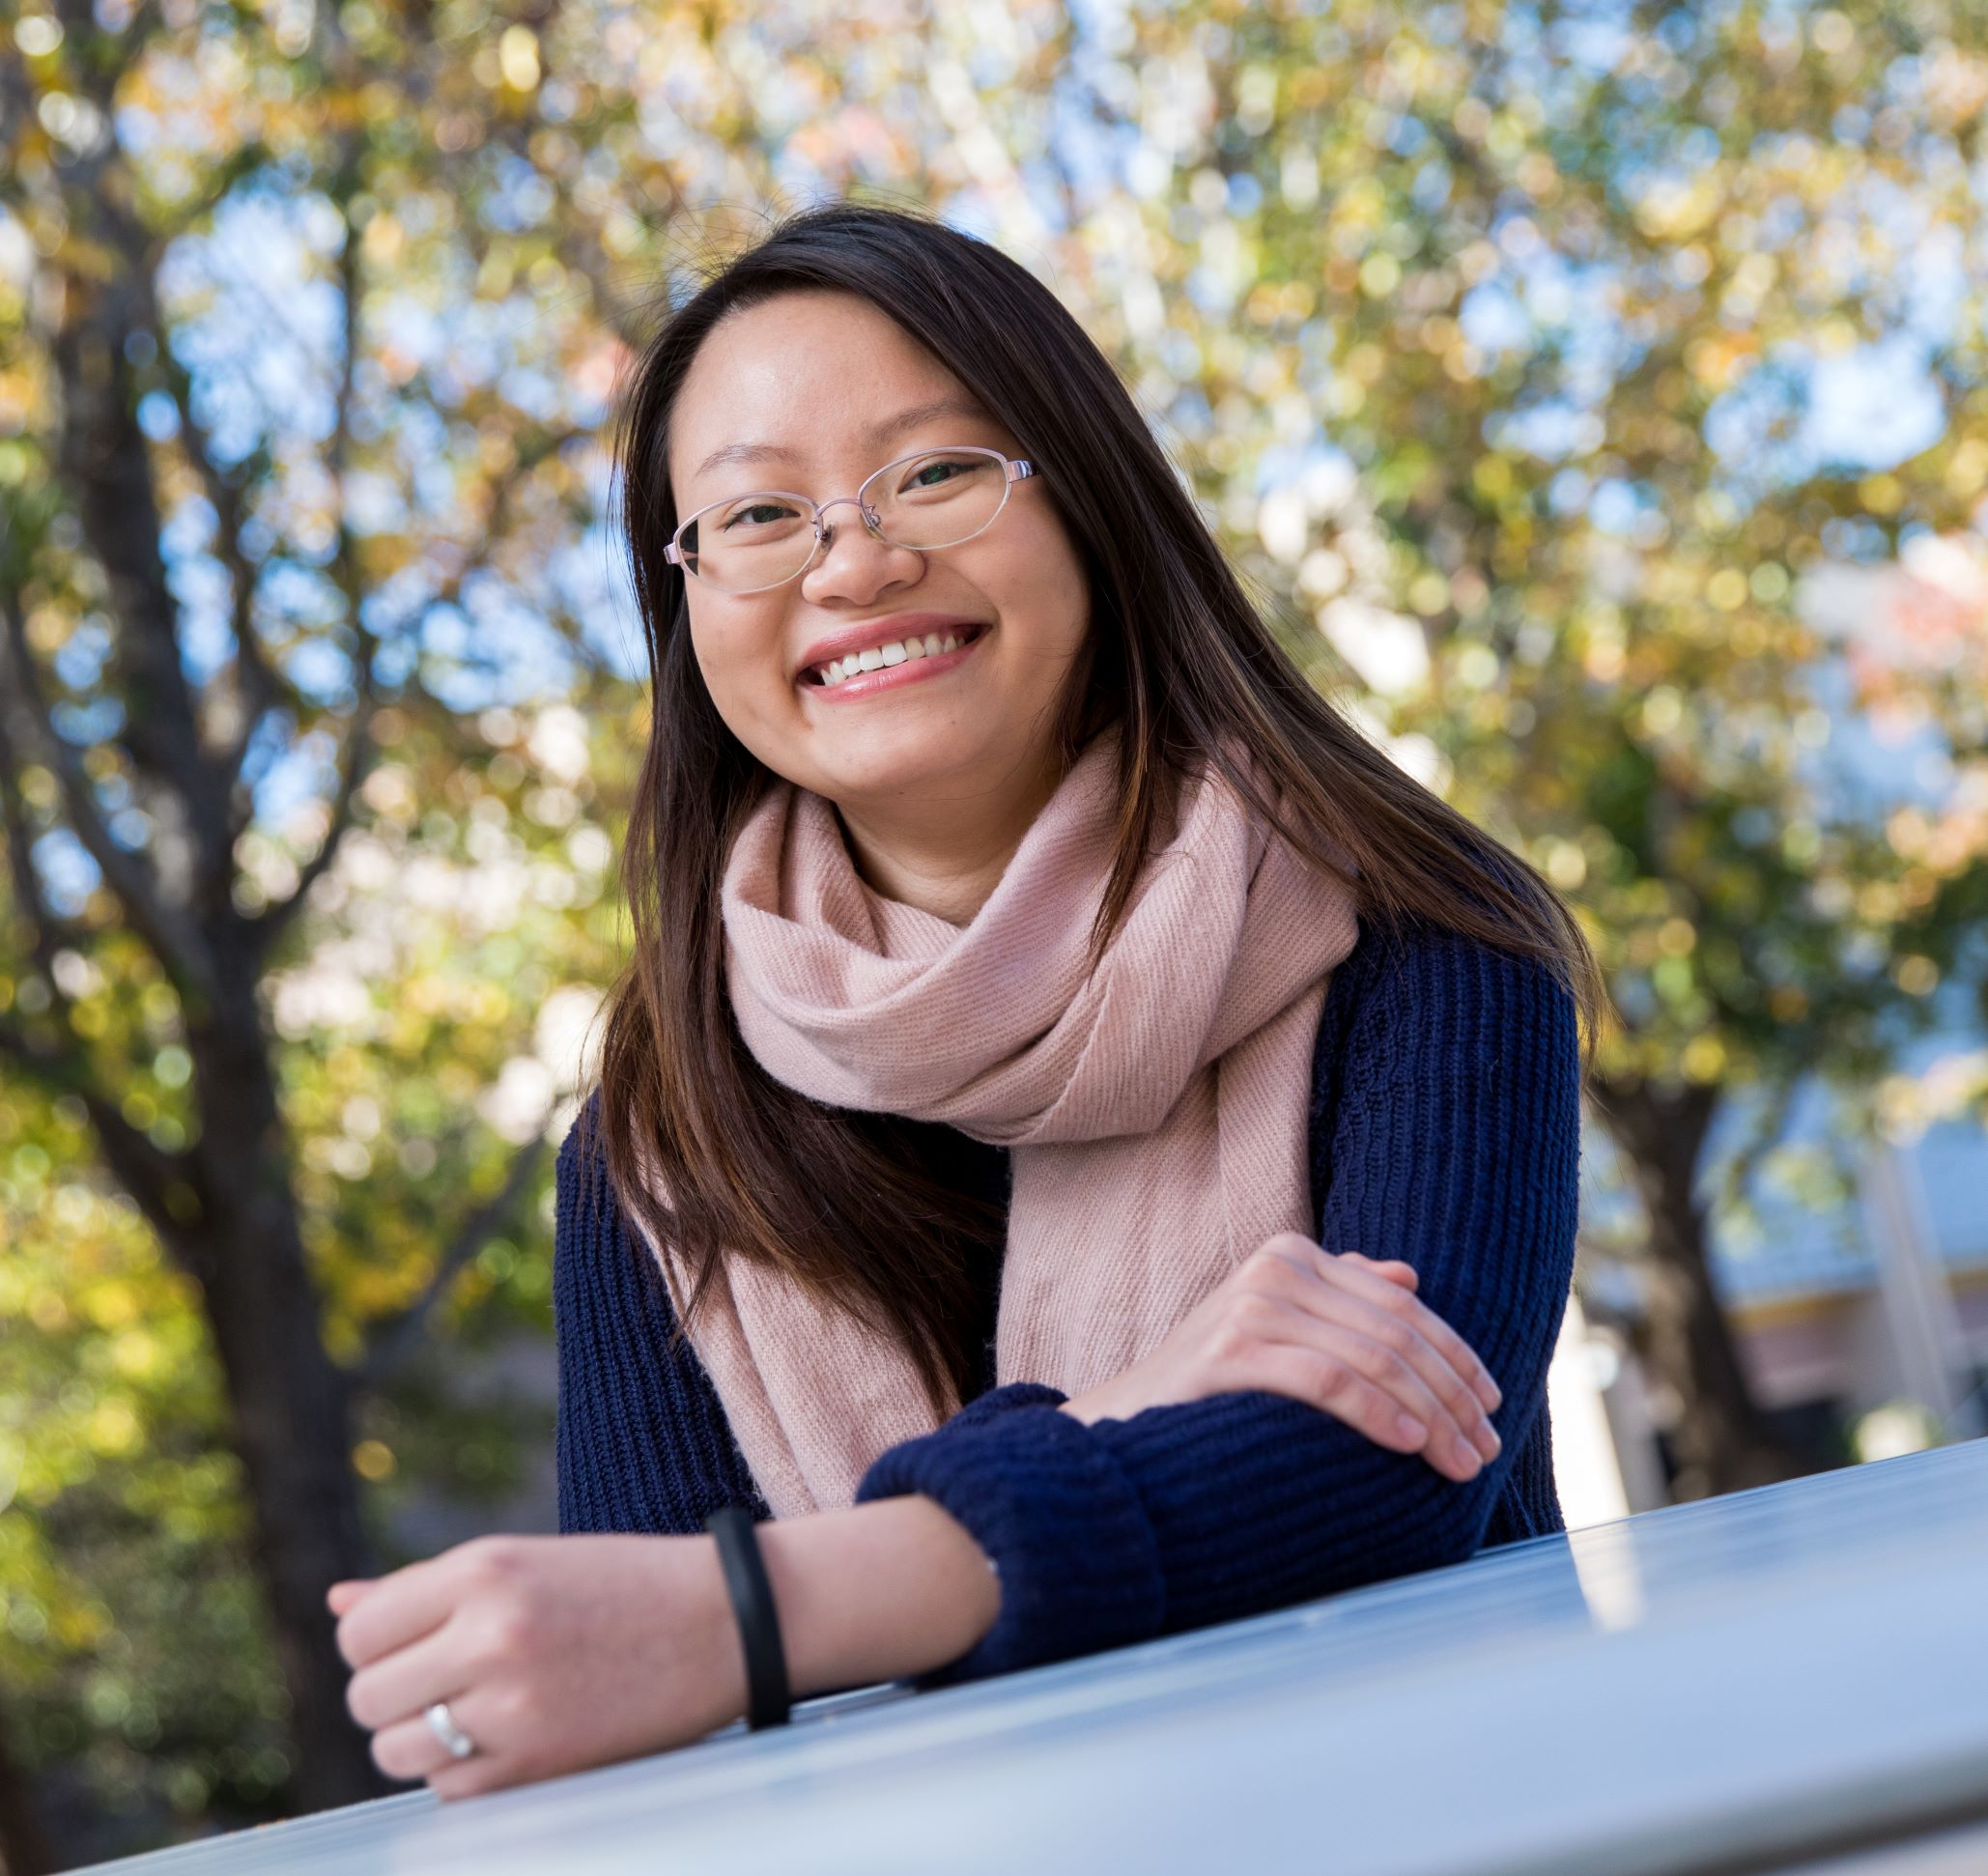 Student & ECR Spotlight – Meet Huong Ly Tong who is curious about how technology can help us be healthier